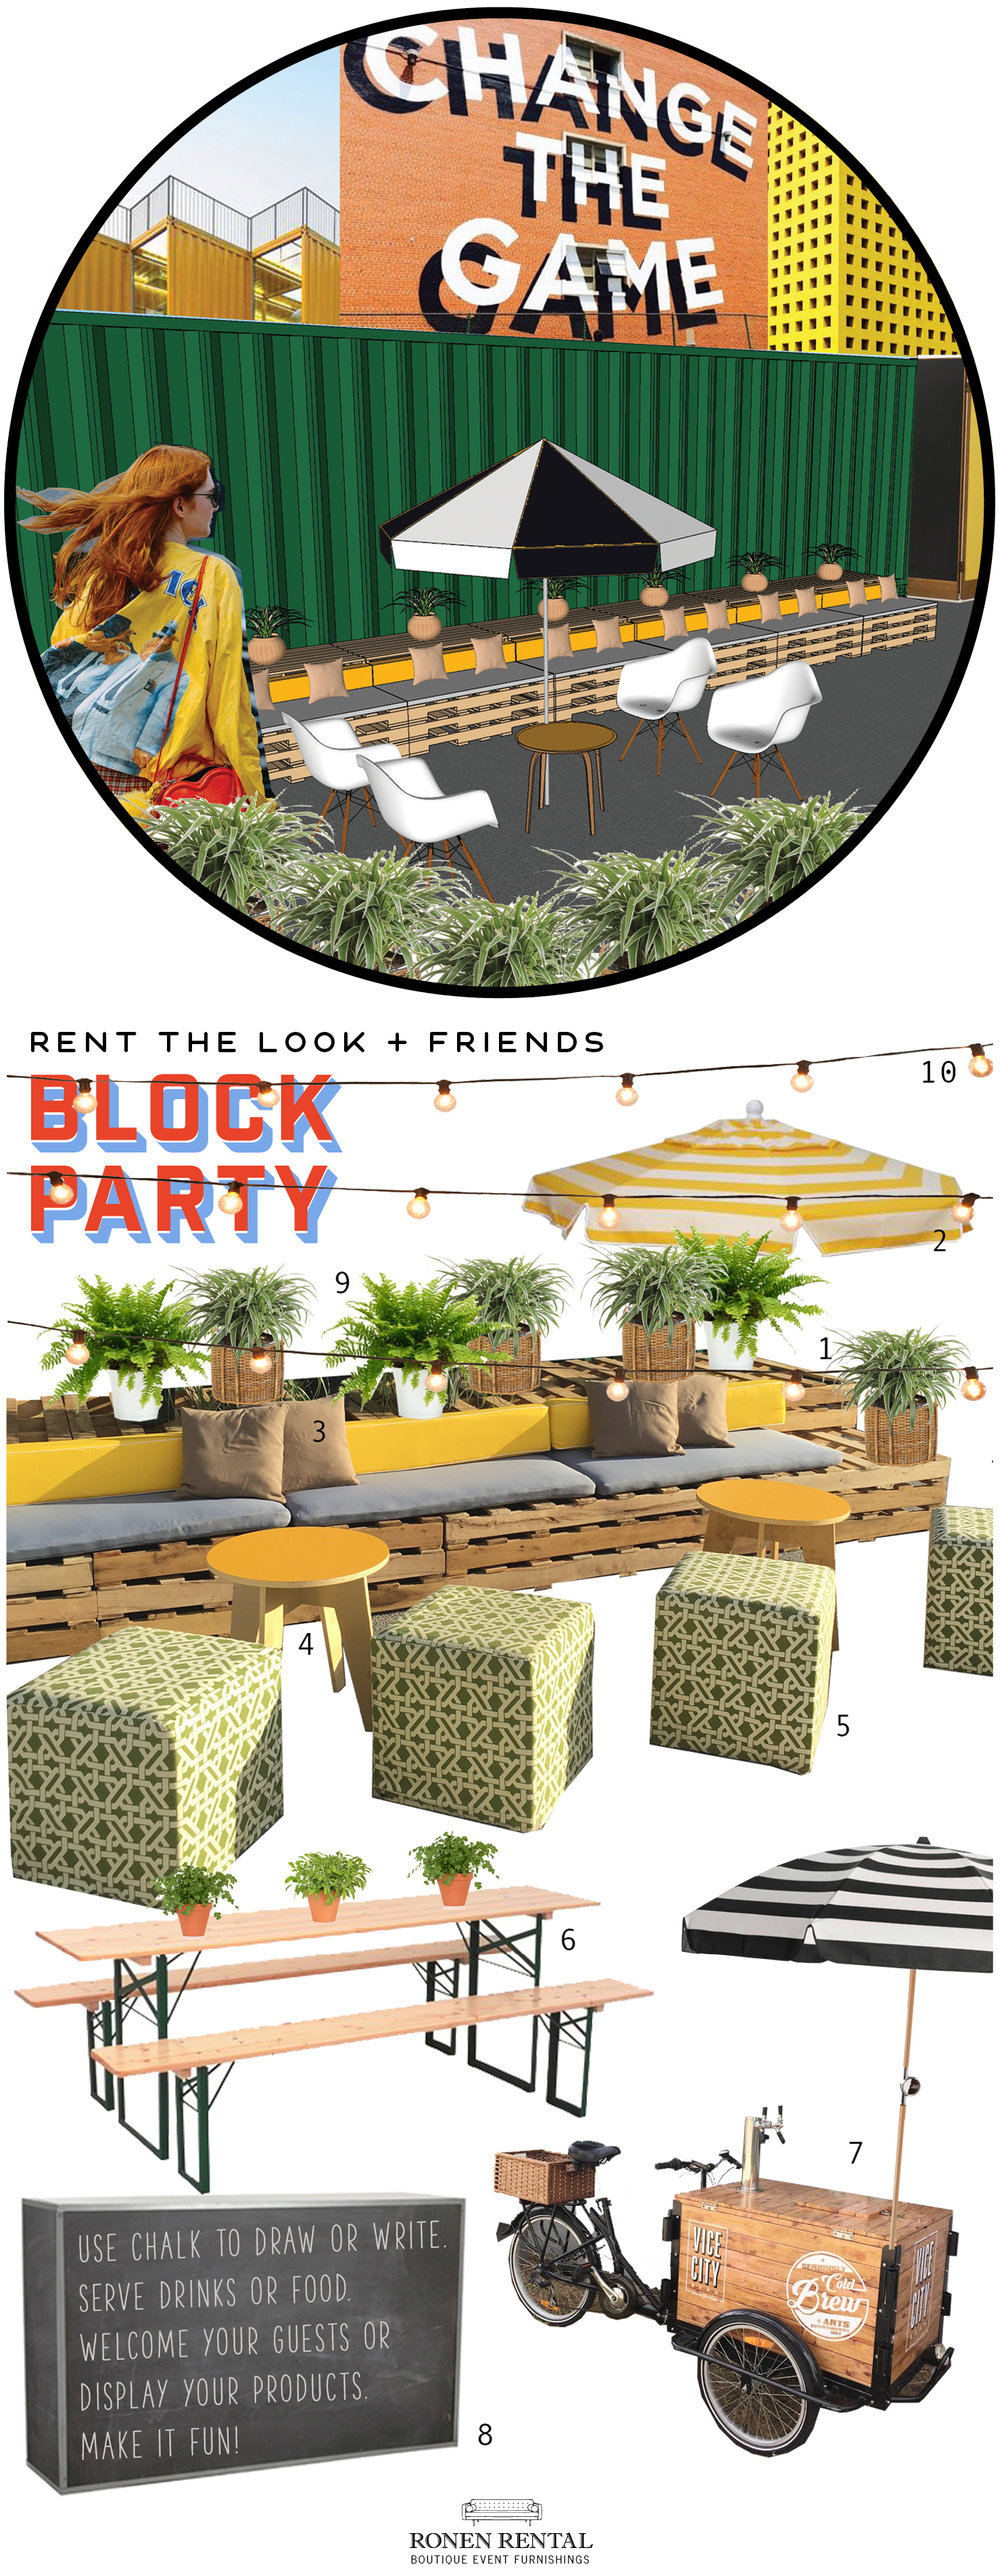 Ronen rental-block-party-RTL-blog.jpg